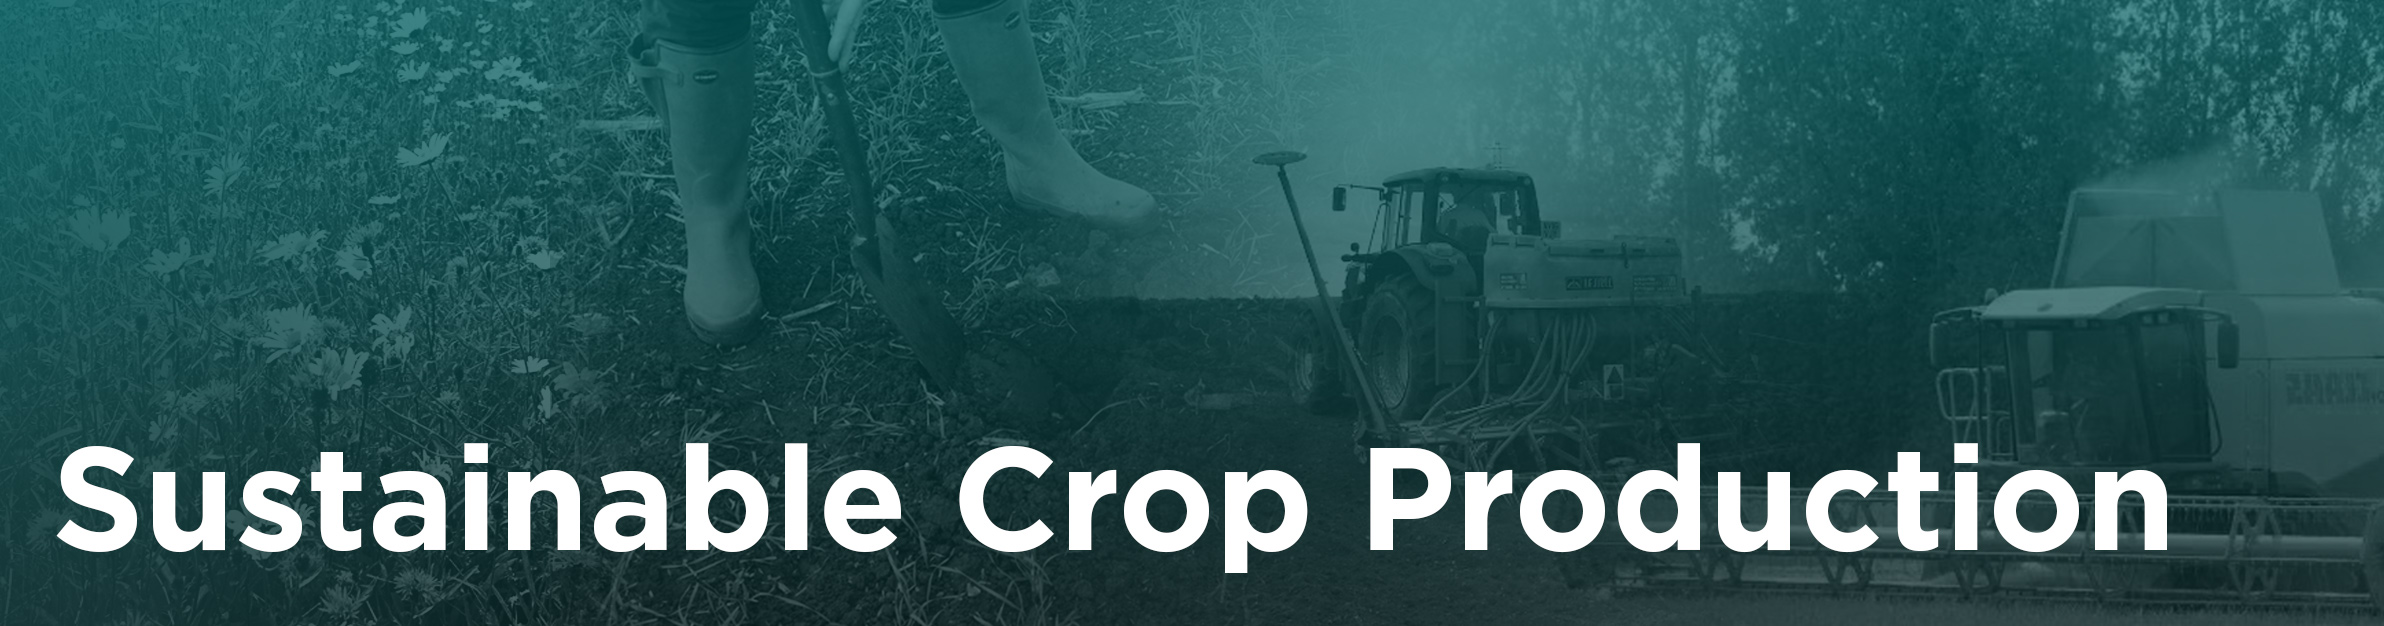 Sustainable Crop Production